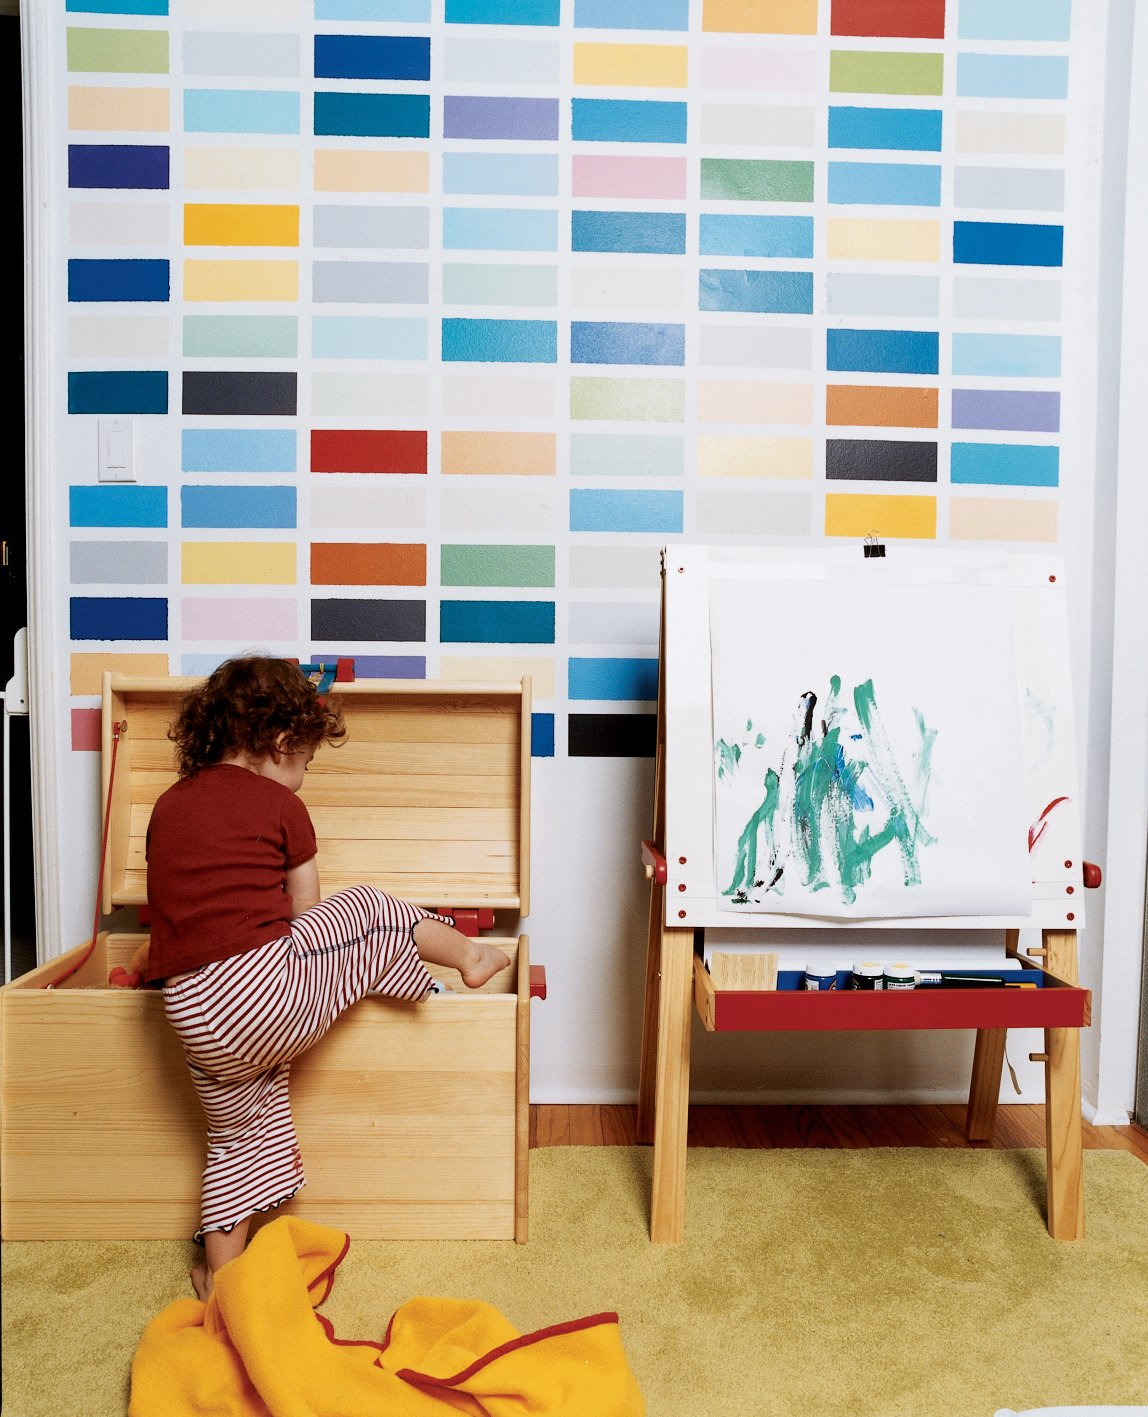 Kids Room, Carpet Floor, Toddler Age, and Playroom Room Type Sosi gets into trouble beneath a colorful grid painted by her dad as a riff on the German painter Gerhard Richter.  Photo 10 of 12 in Way Out West